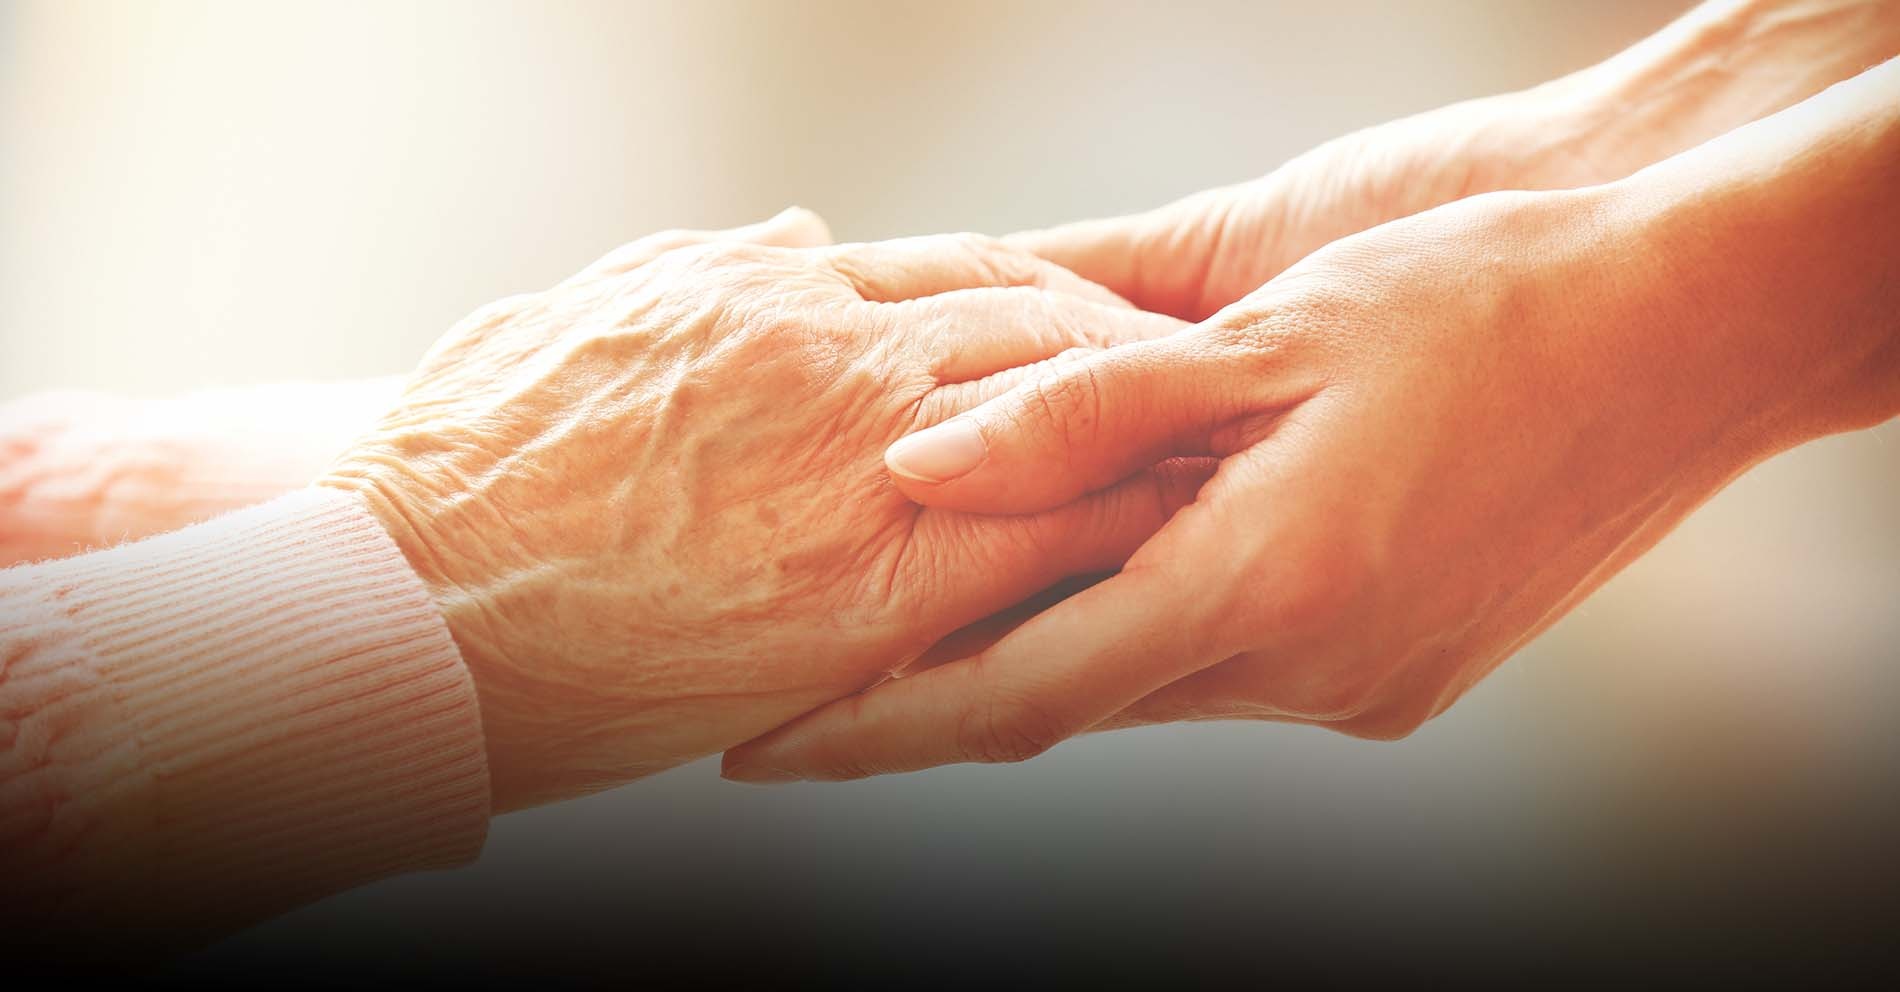 Empowering Seniors with Emoha - Specialized Elder Care Services